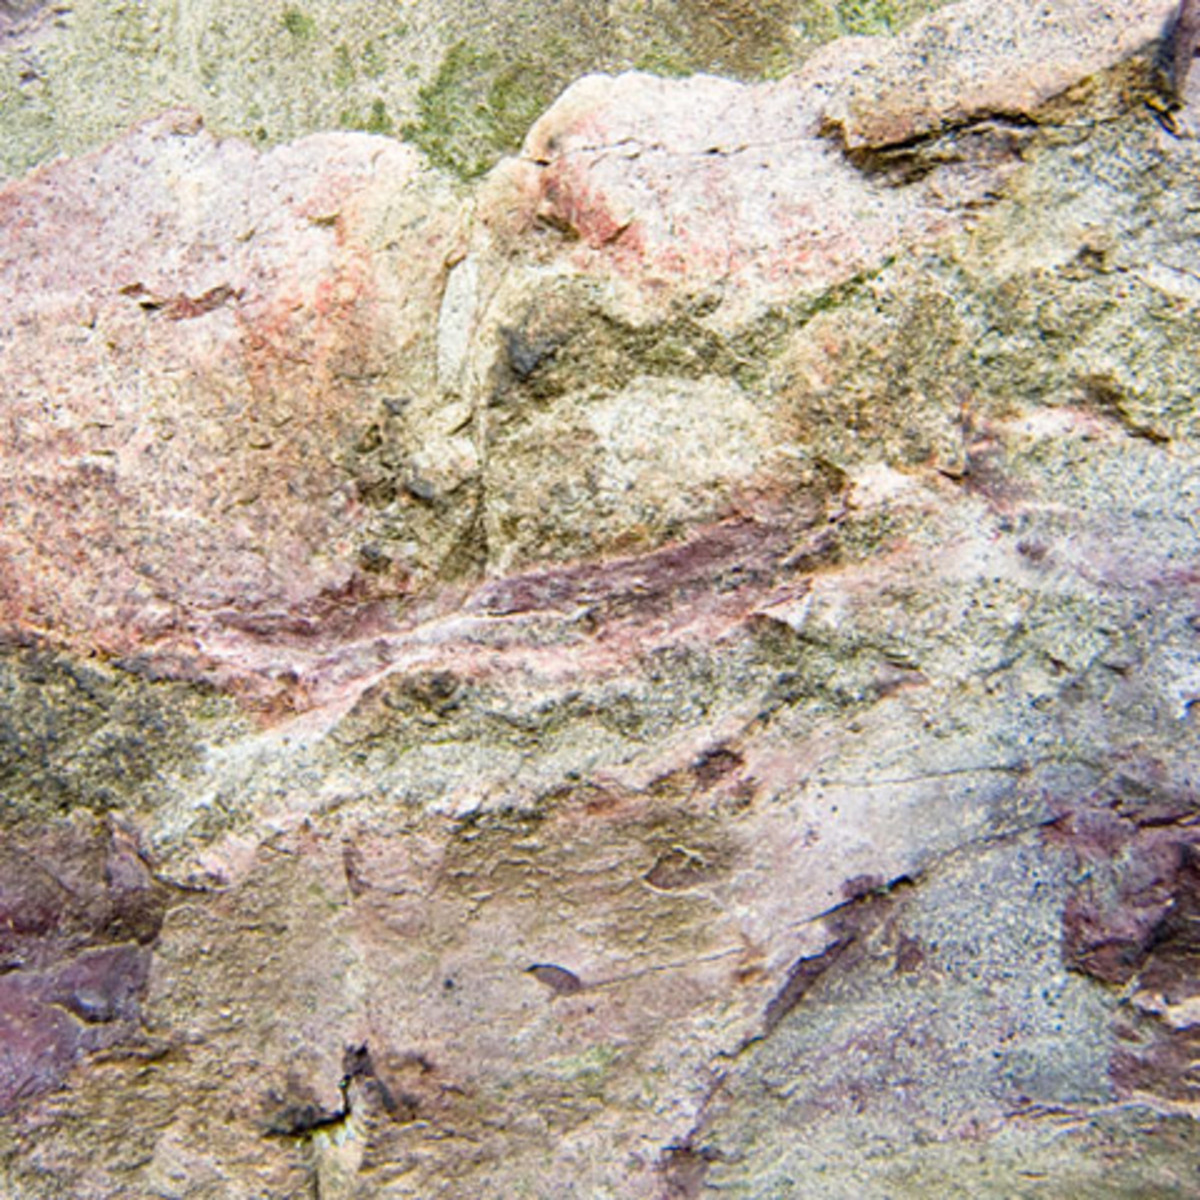 The purplish areas on this rock from the New Jersey Palisades are areas of contact metamorphism. Compared to the rock around them, they are more crumbly due to their exposure to intense 1000 degree heat.